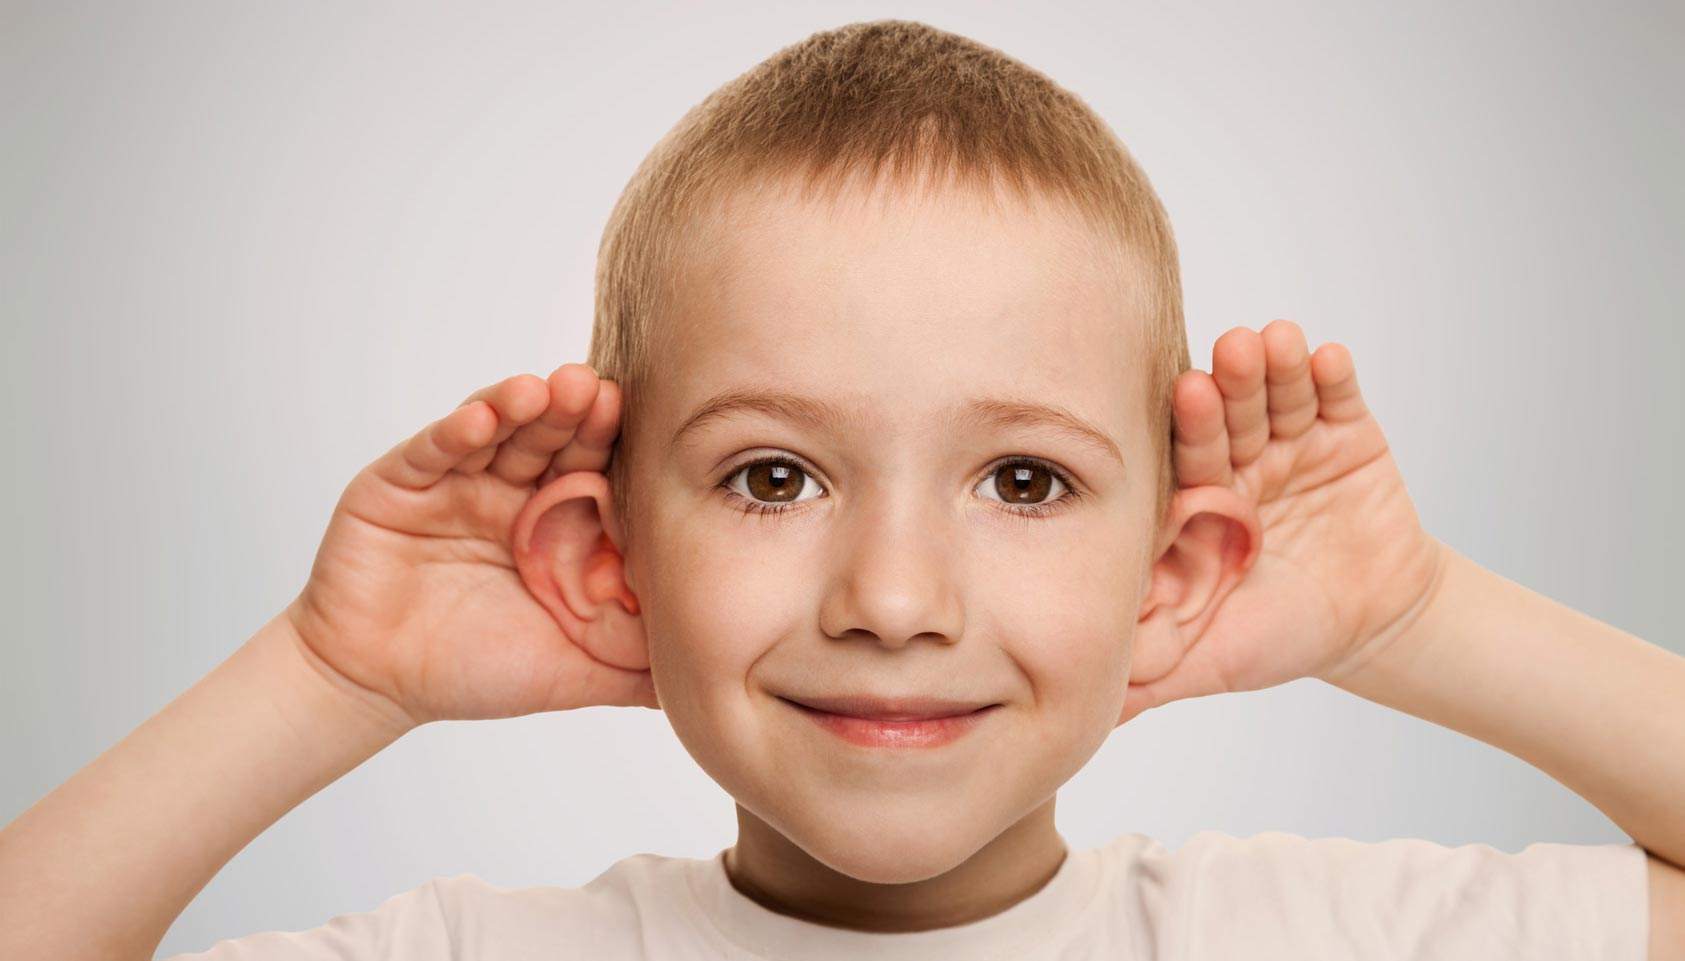 Boy grabbing his ears and smillling - everything you need to know about hearing loss.